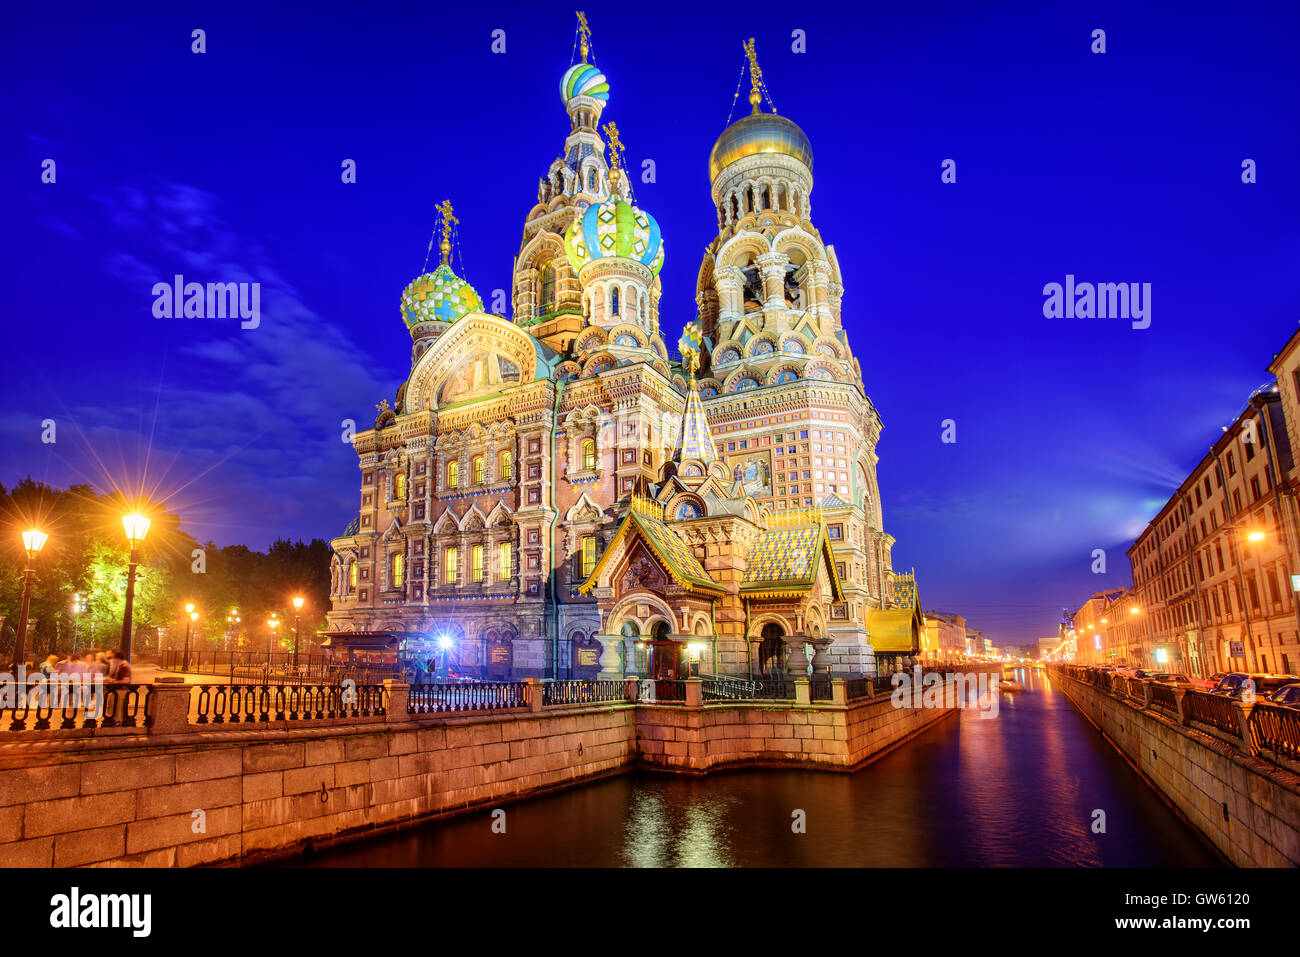 The orthodox Church of the Savior decorated with colorful onion domes on Griboyedov Canal illuminated at evening, - Stock Image